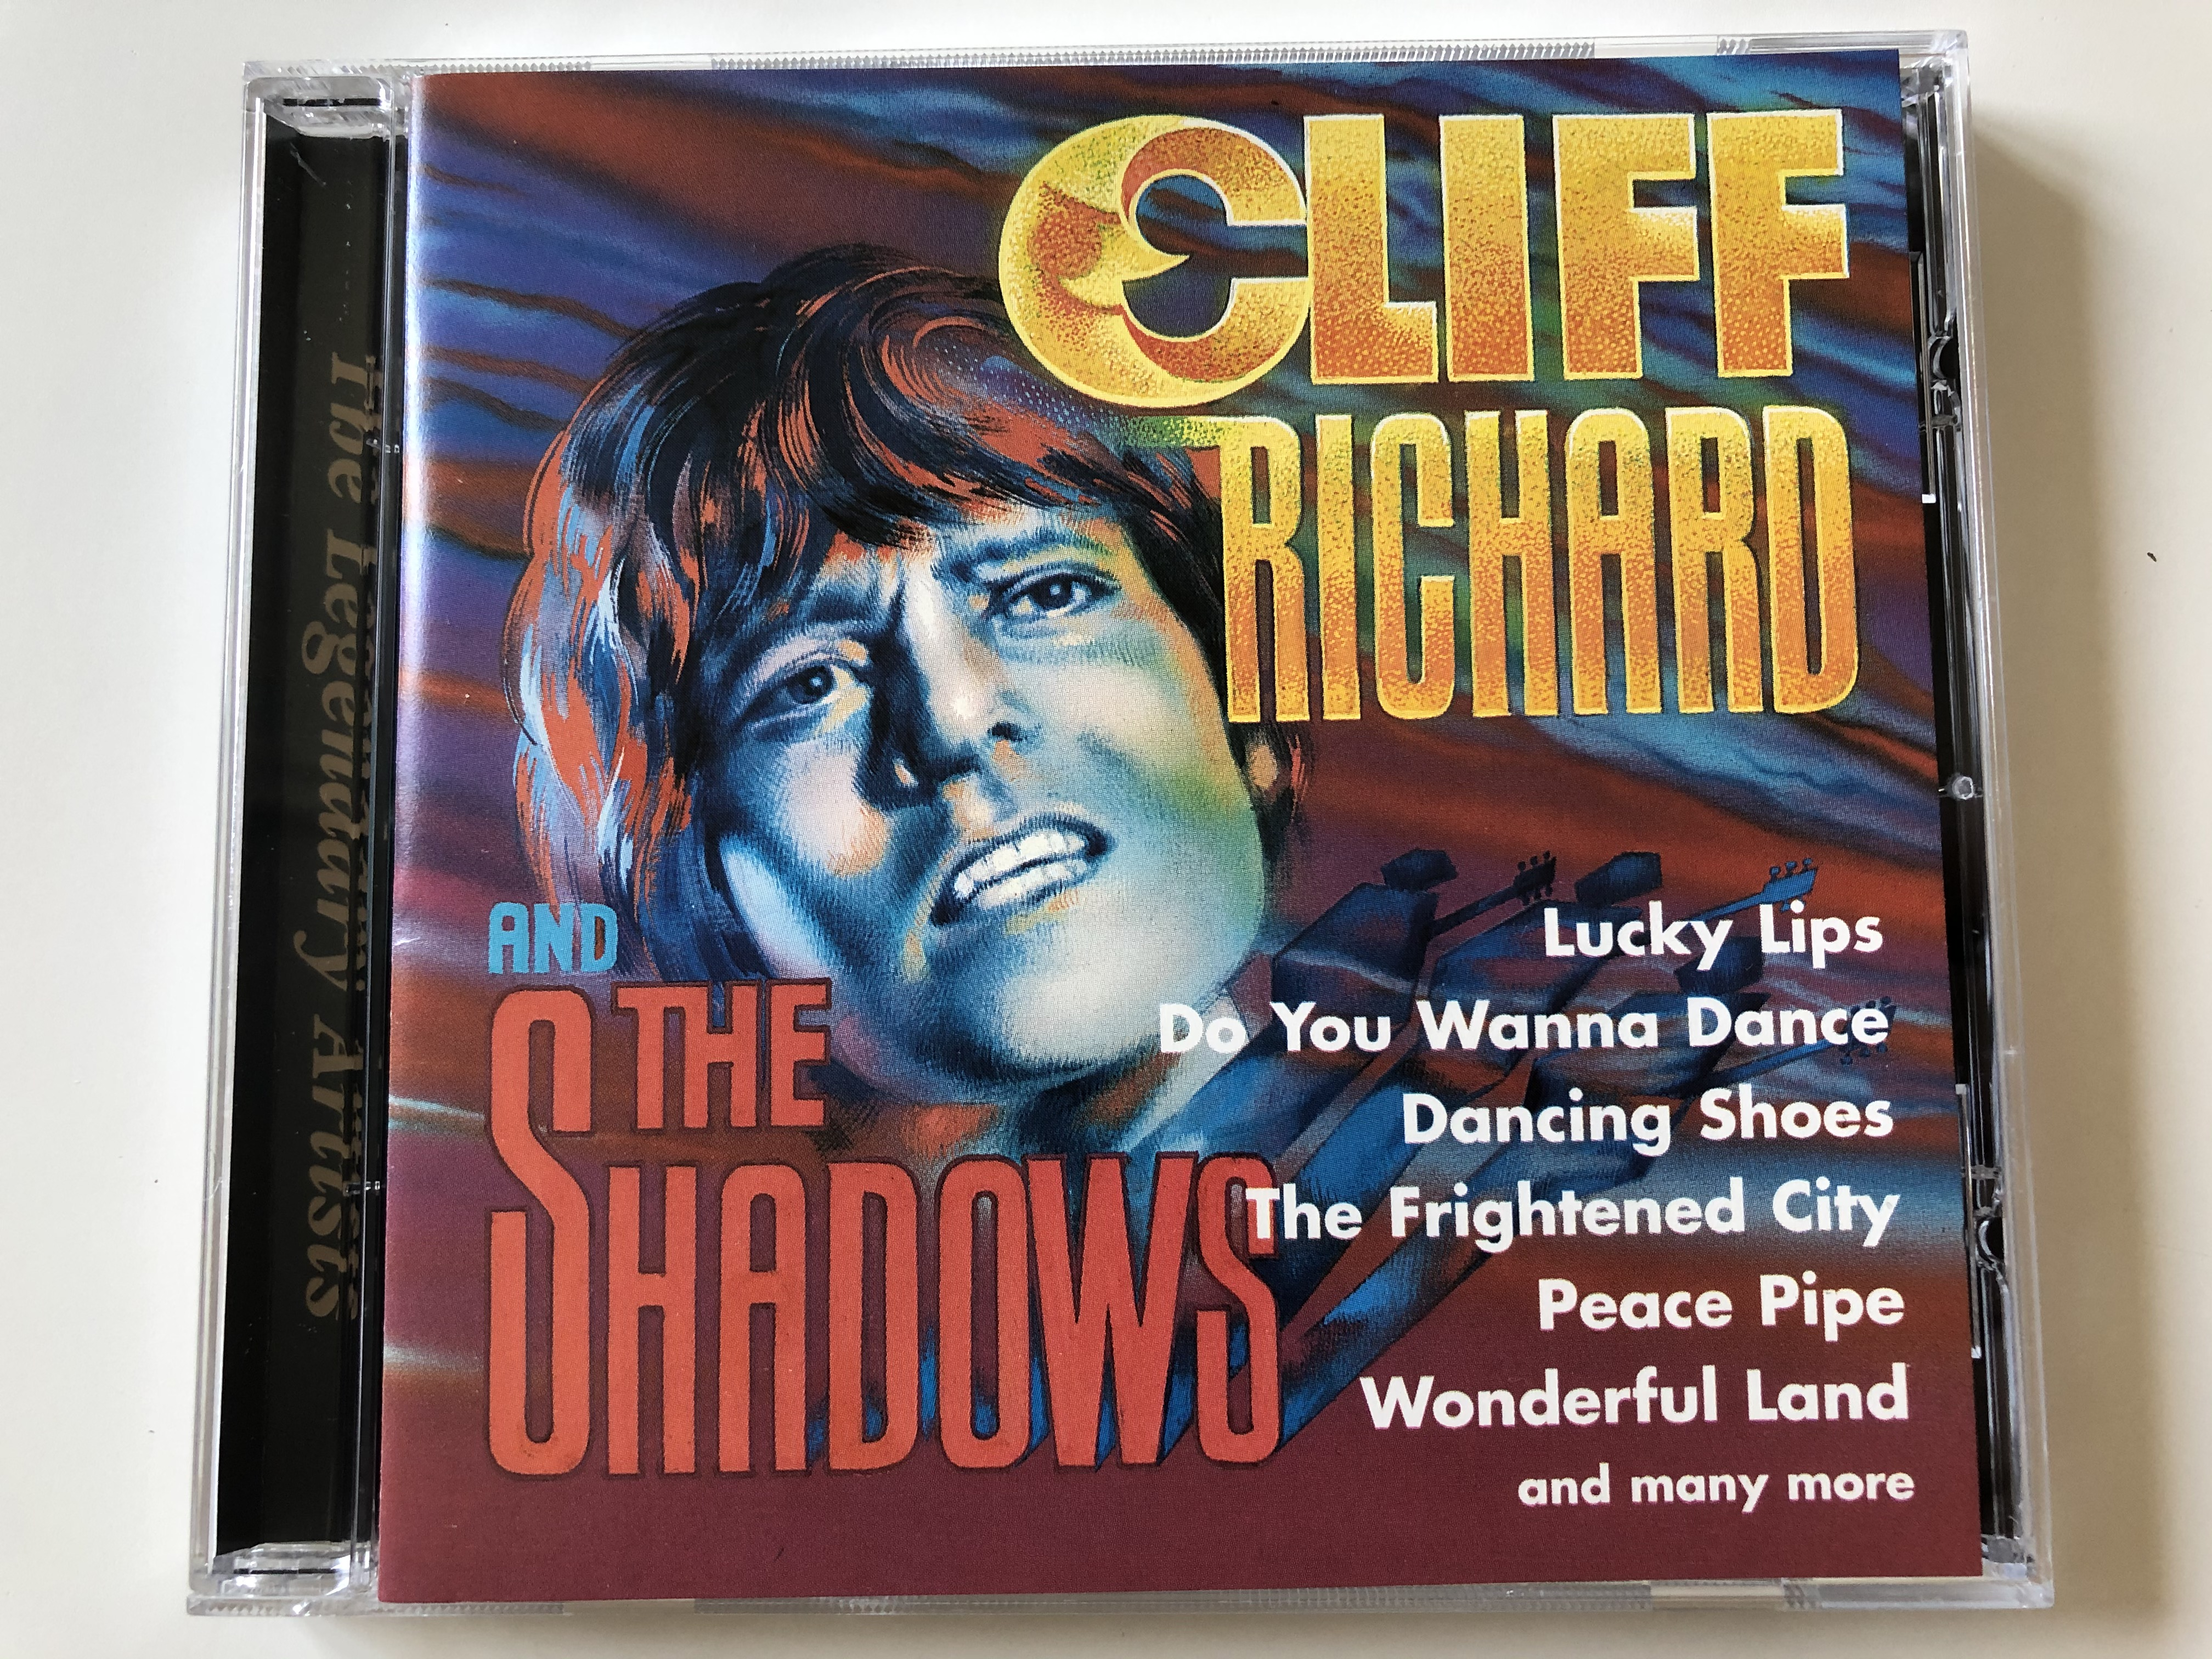 cliff-richard-and-the-shadows-lucky-lips-do-you-wanna-dance-dancing-shoes-the-frightened-city-peace-pipe-wonderful-land-and-many-more-mega-audio-cd-1997-mcda-87024-1-.jpg